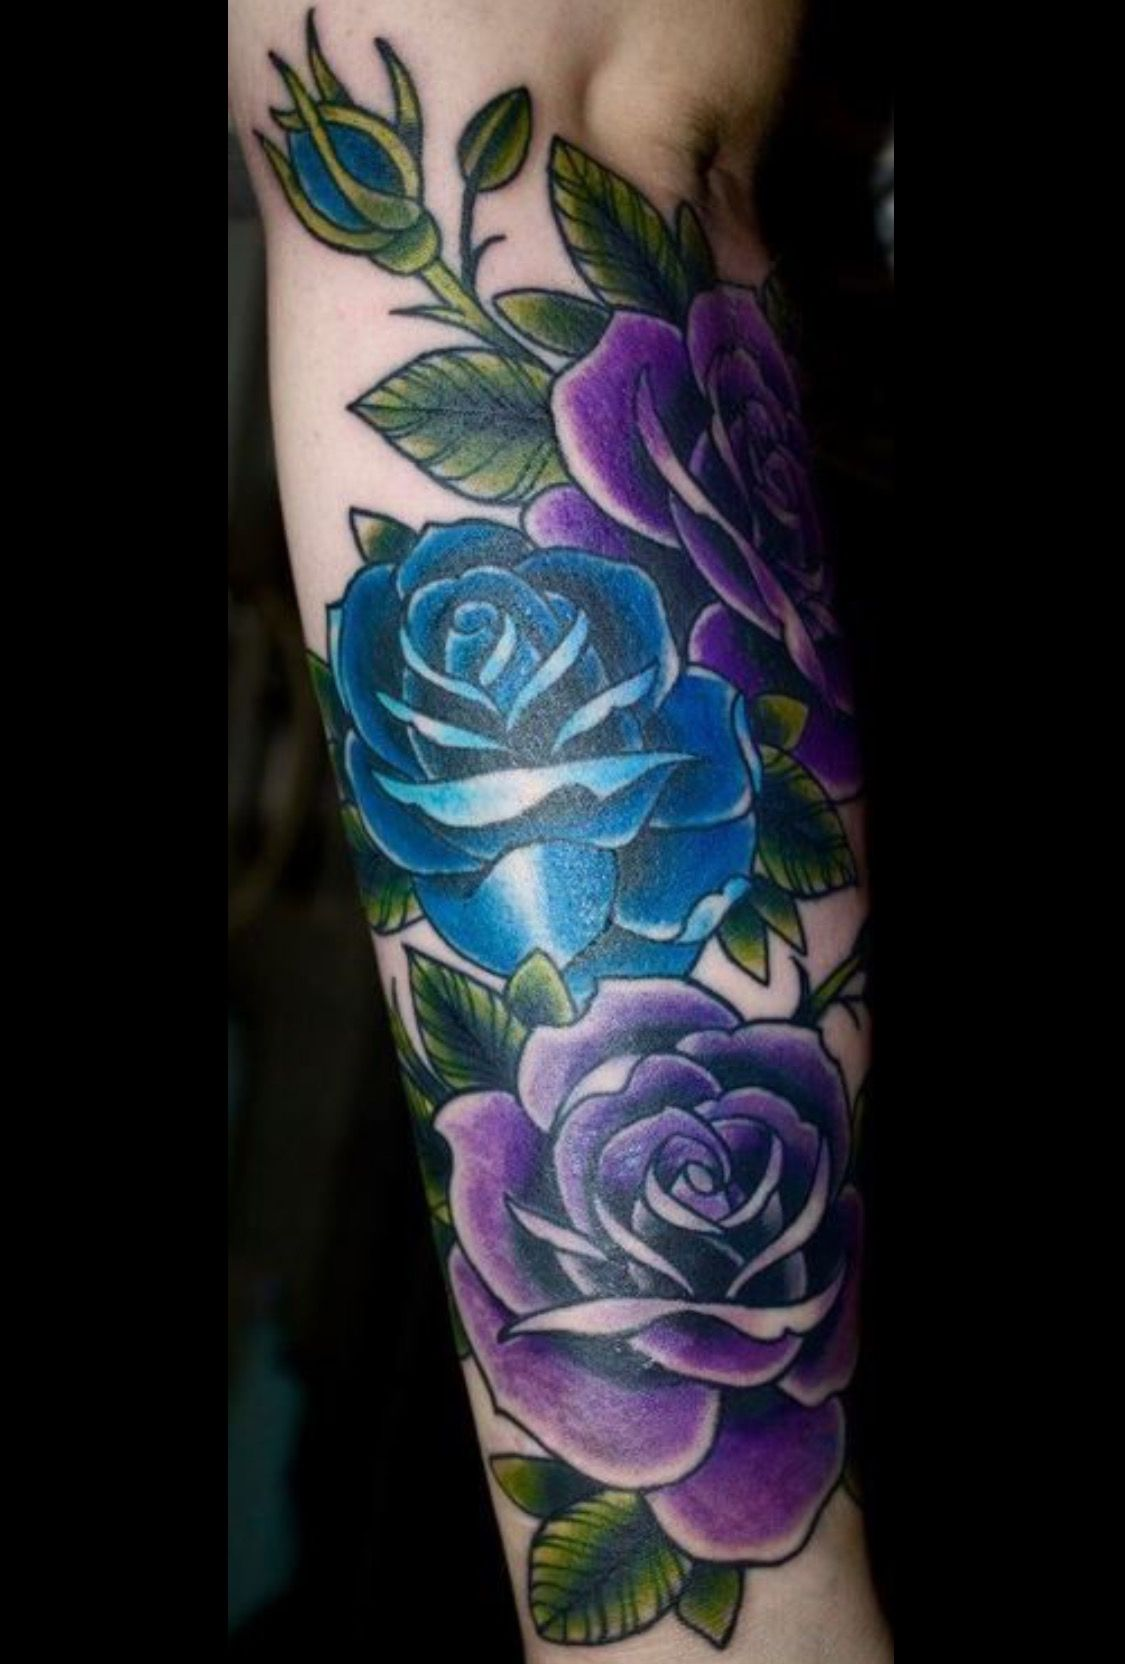 896e14345 Blue Rose Tattoo Meaning, Blue Rose Tattoos, Blue Rose Meaning, Colorful  Rose Tattoos